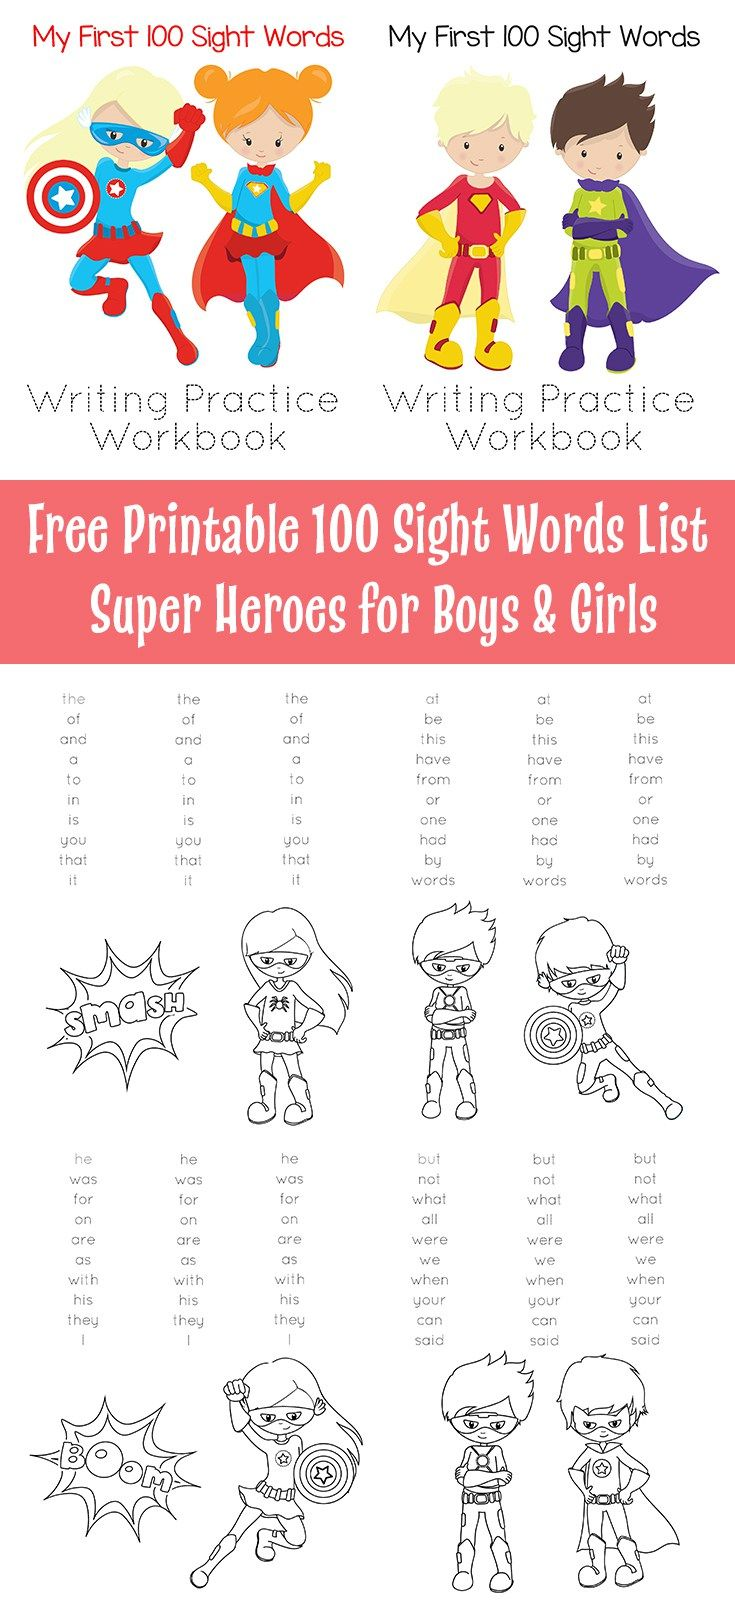 Free Printable 100 Sight Words List Super Heroes For Boys Girls California Unpublished Sight Words Kindergarten Sight Words List Kindergarten Sight Words List [ 1614 x 735 Pixel ]